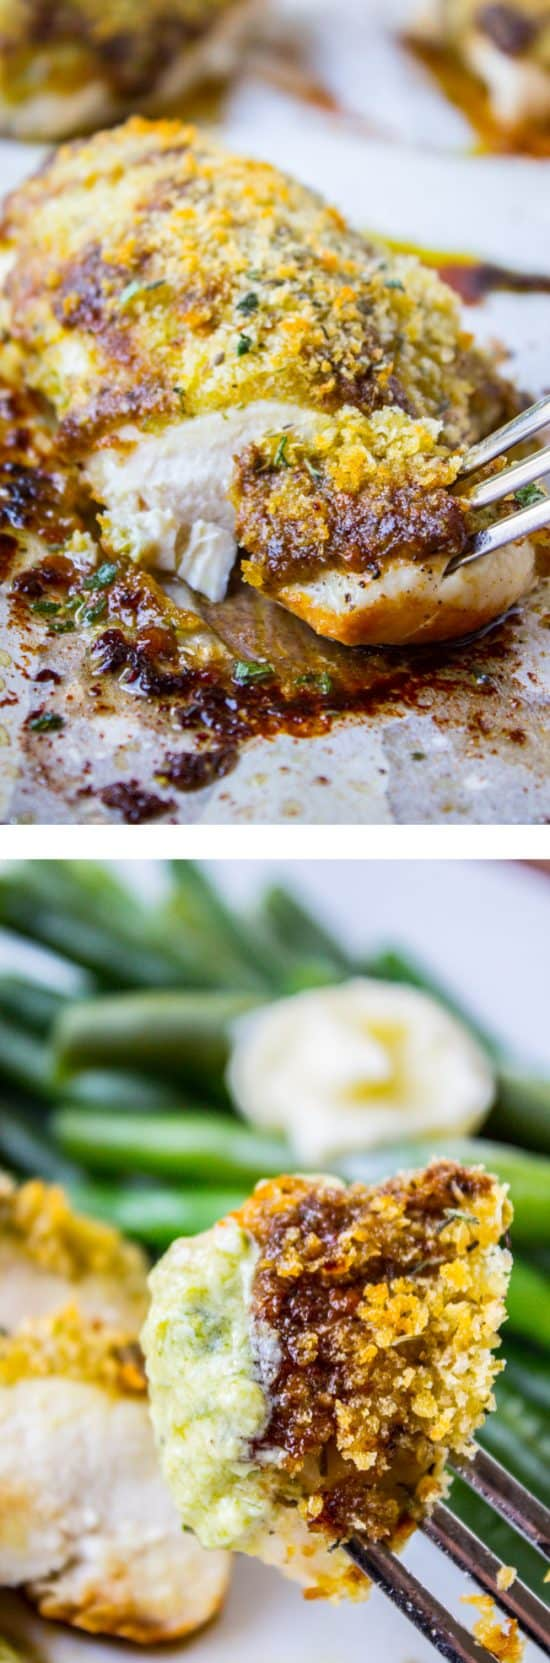 Easy Baked Pesto Chicken from The Food Charlatan